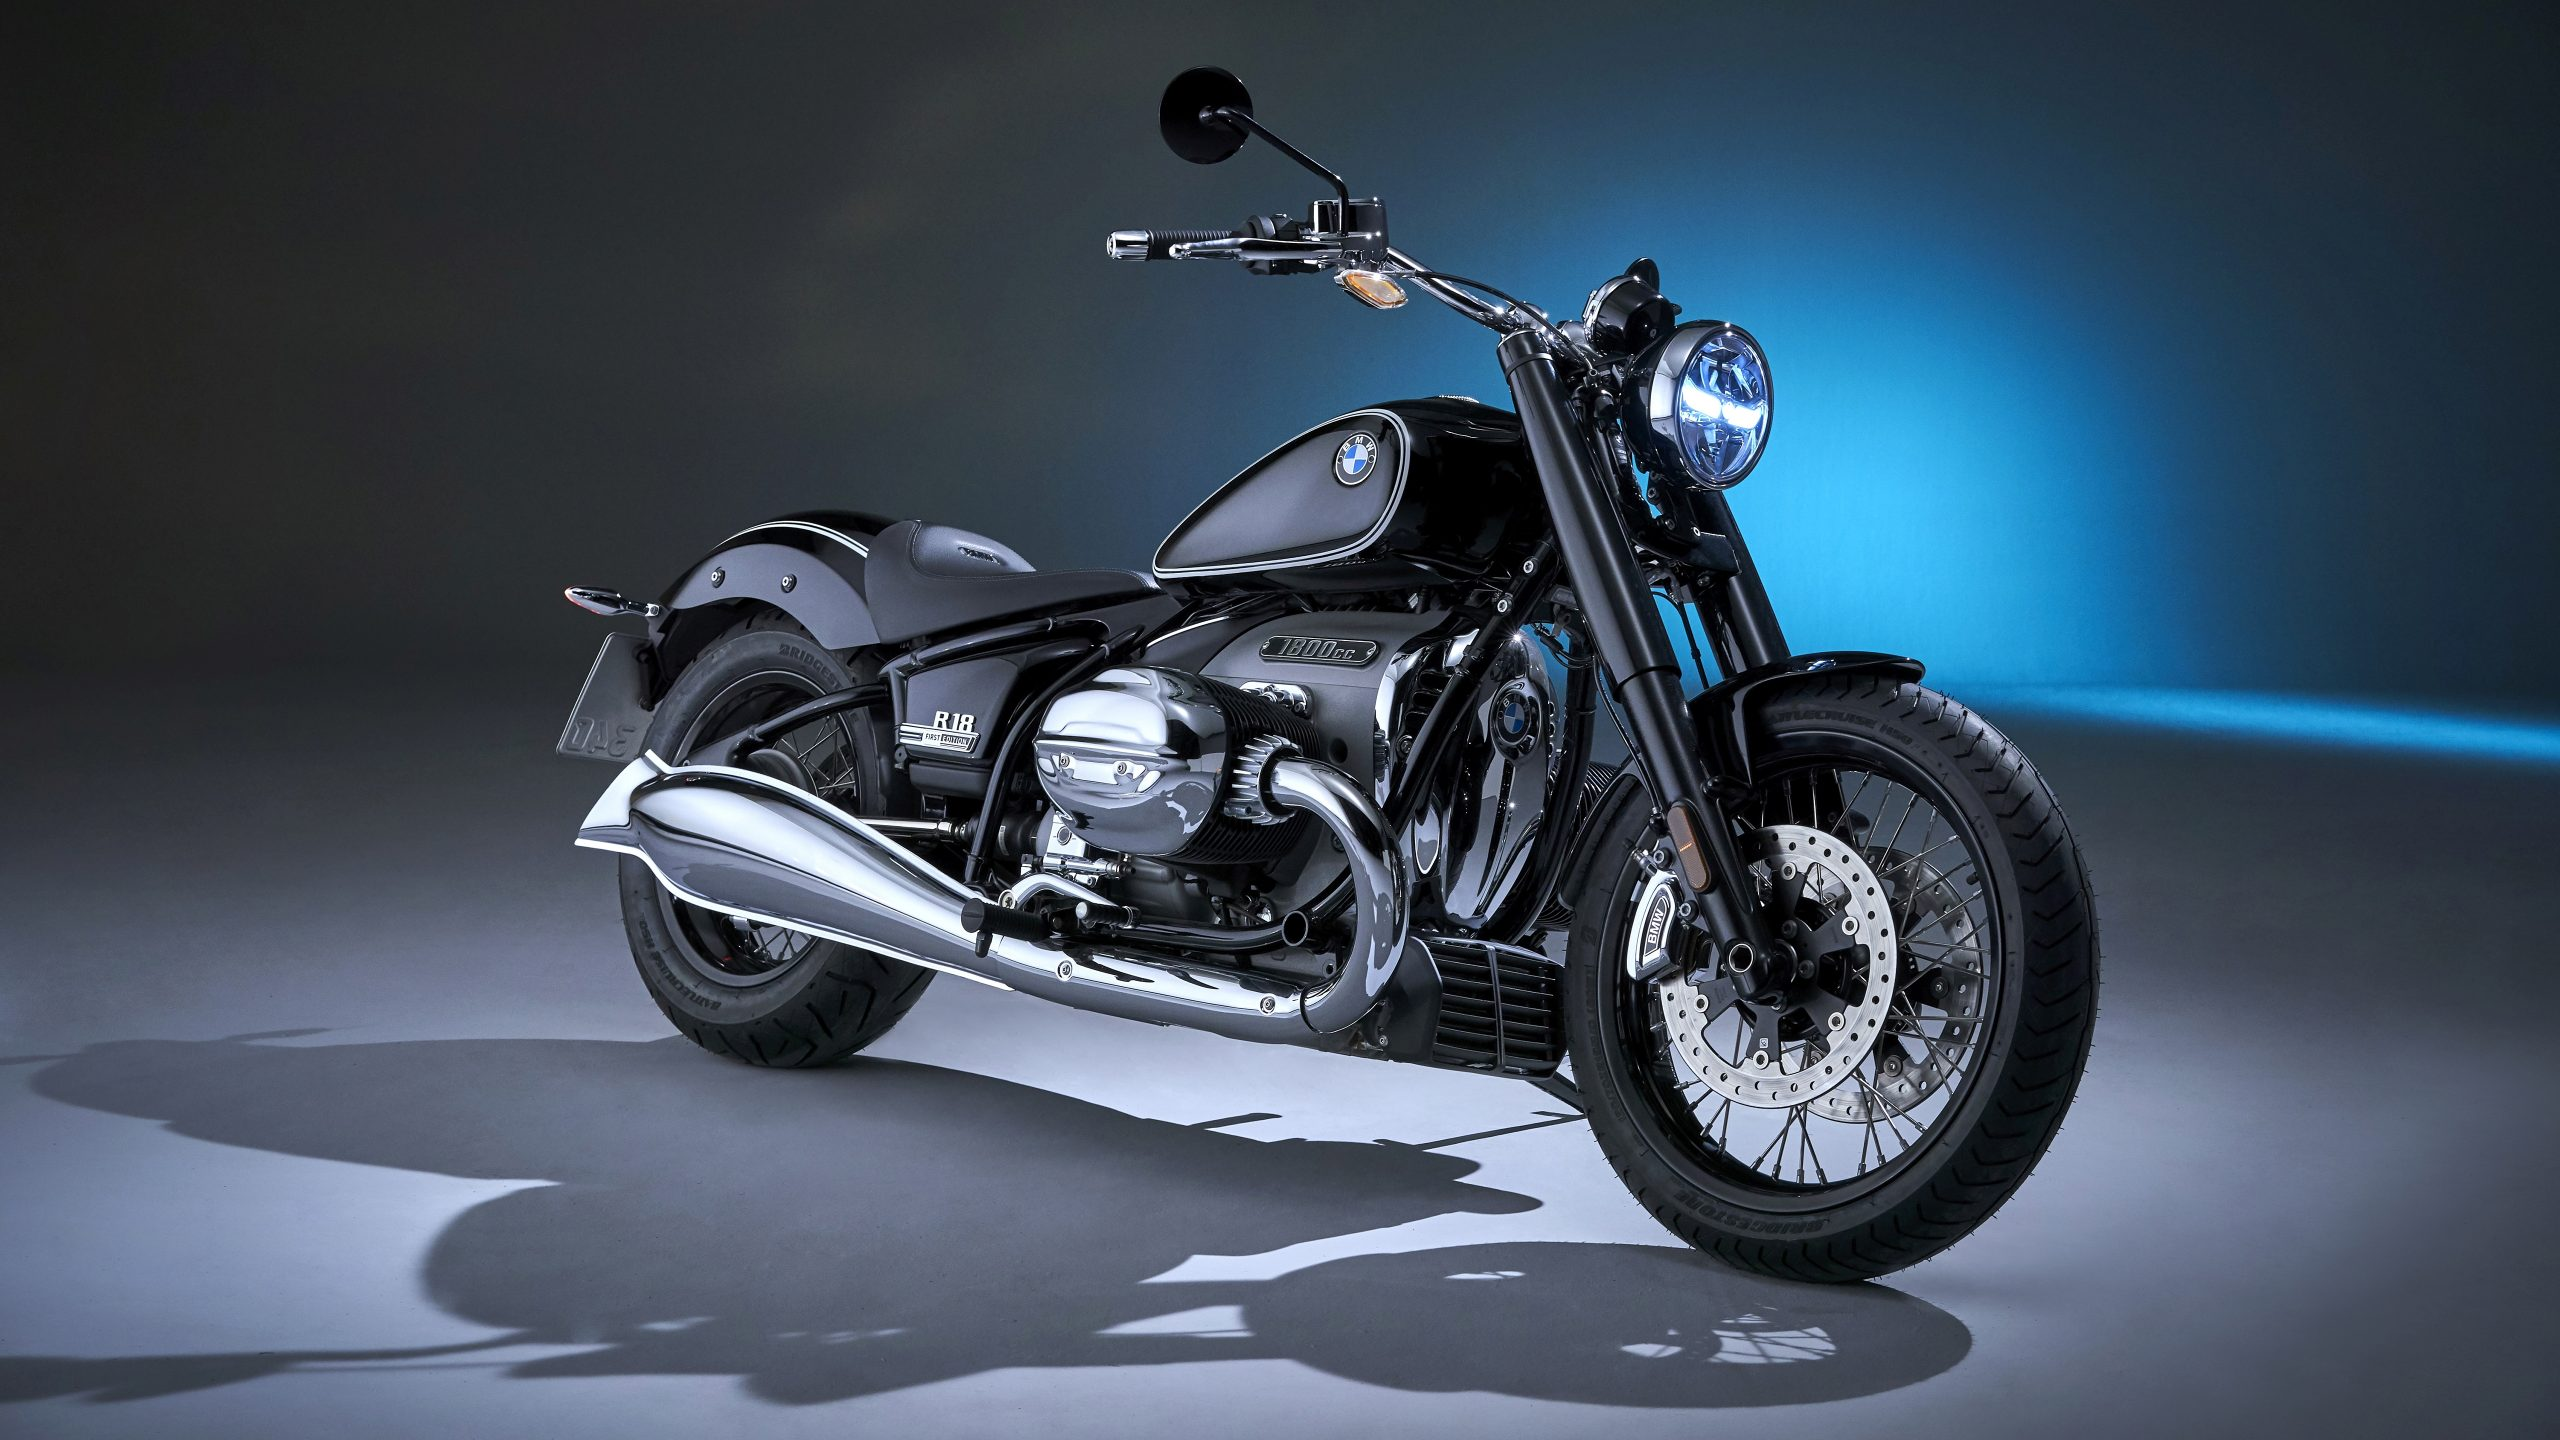 bmw r18 first edition 2020 5k